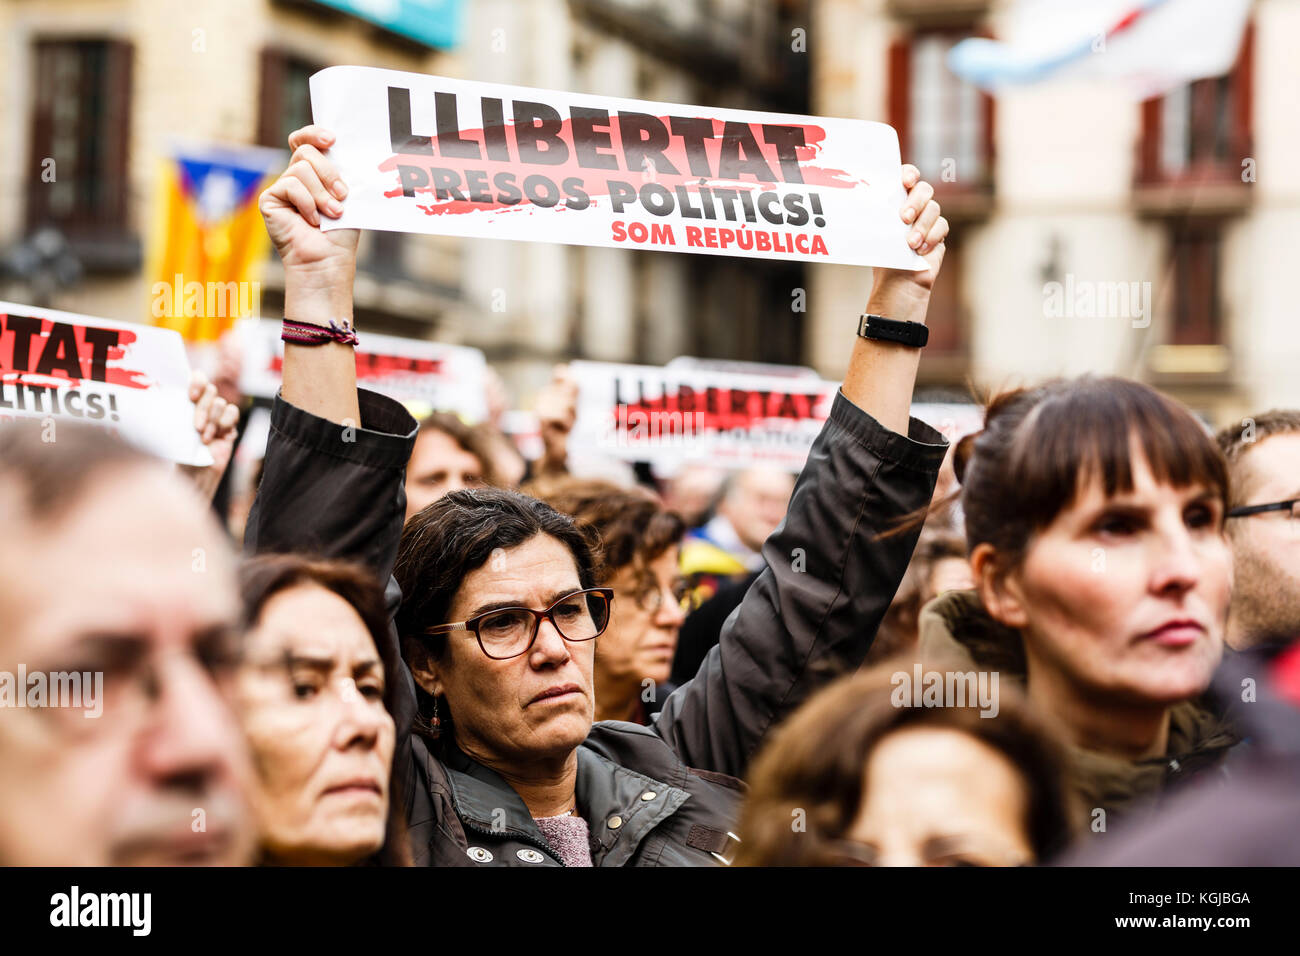 November 8, 2017 - Barcelona, Barcelona, Spain - Protesters calling for freedom for political prisoners during the Stock Photo